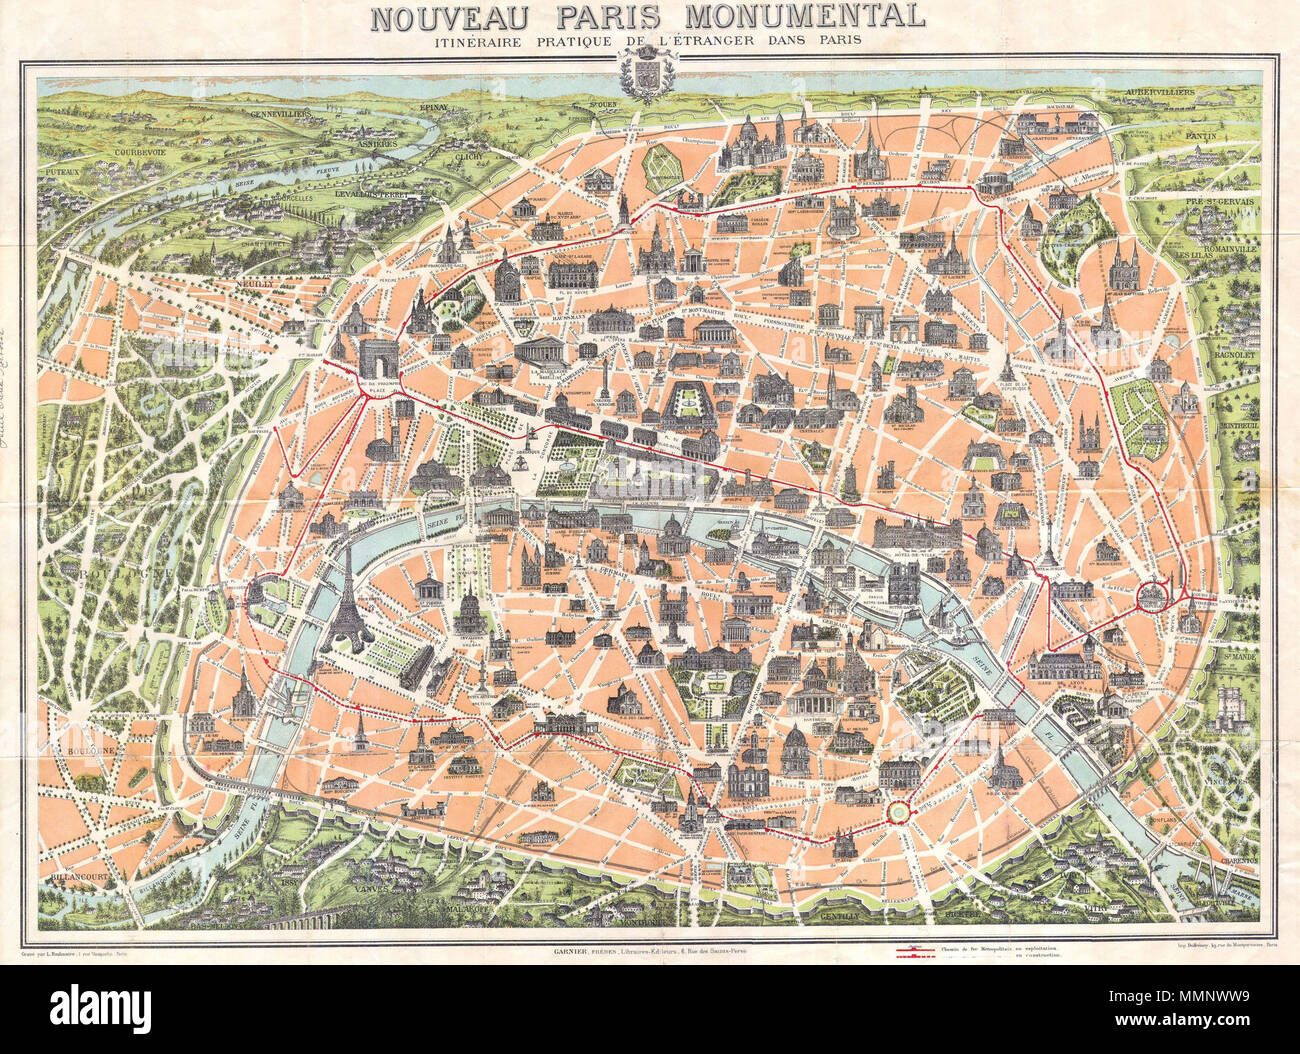 english this rare c 1900 pocket map of paris france combines the virtues of a map and a view covers the old walled city of paris and surrounding